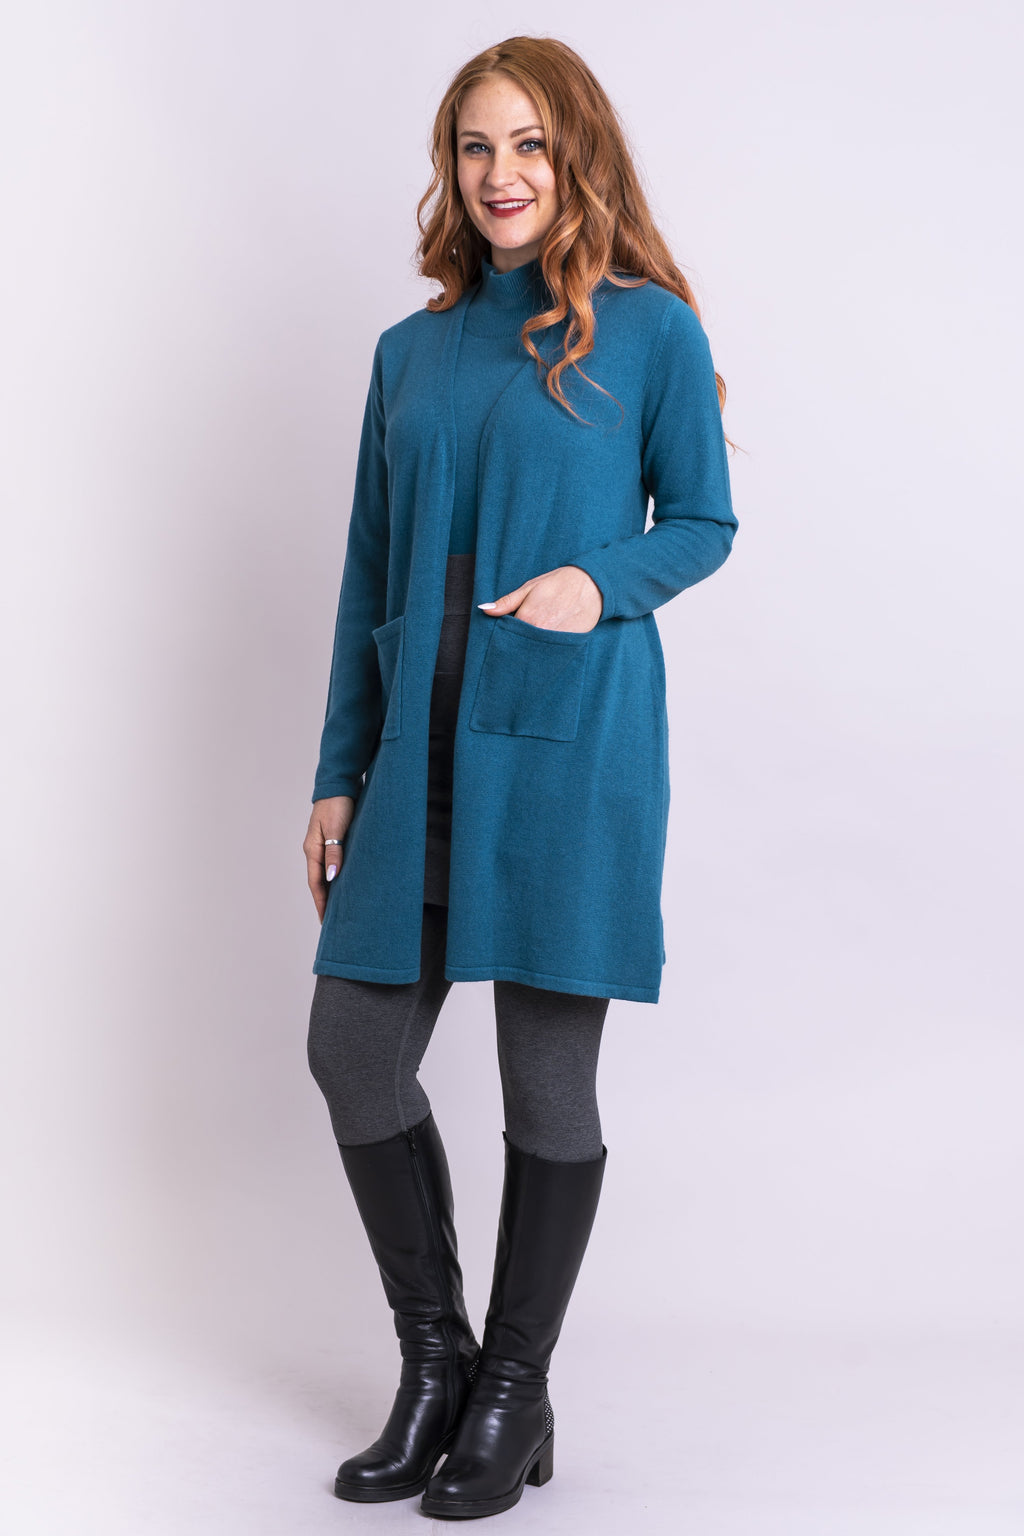 Slick Sweater, Jade, Cashmere - Blue Sky Clothing Co